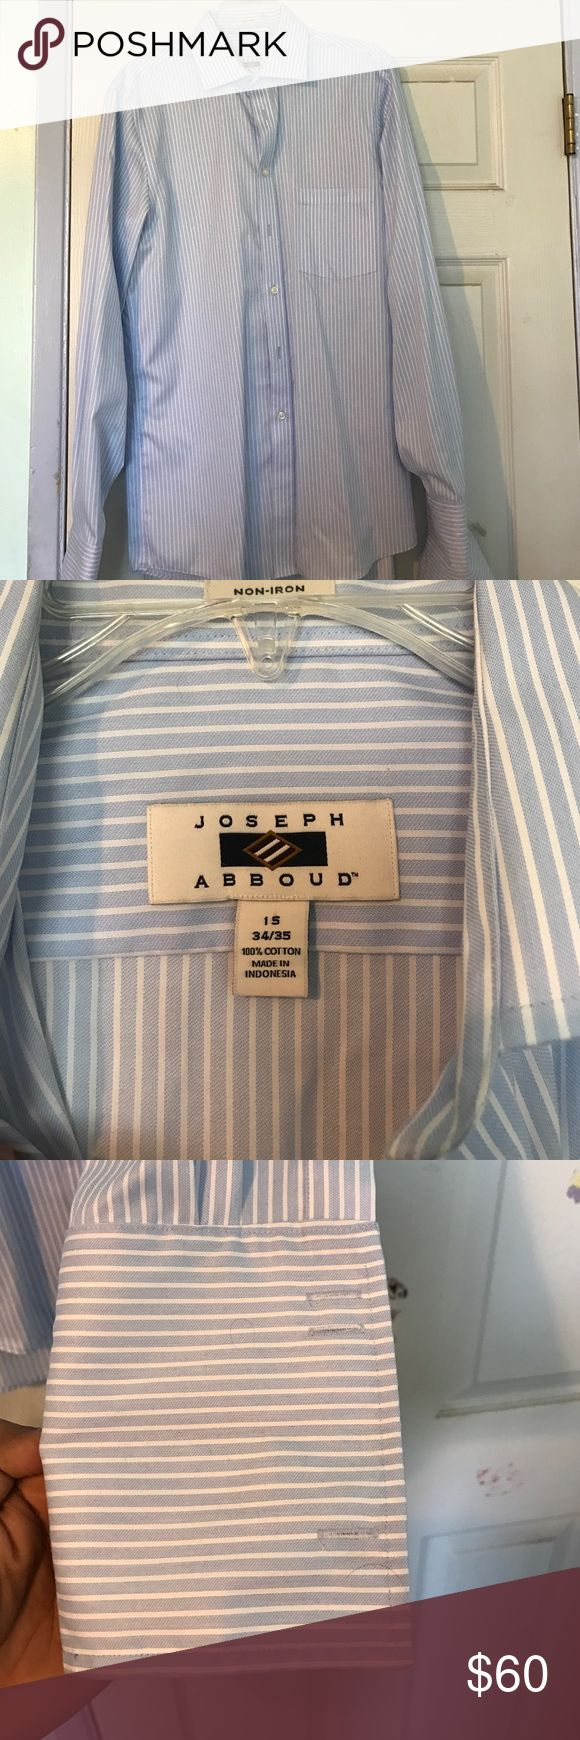 Joseph Abboud non iron dress shirt Blue striped French cuffed dress shirt worn once not stains or damaged non iron (cuff links not including) joseph abboud Shirts Dress Shirts